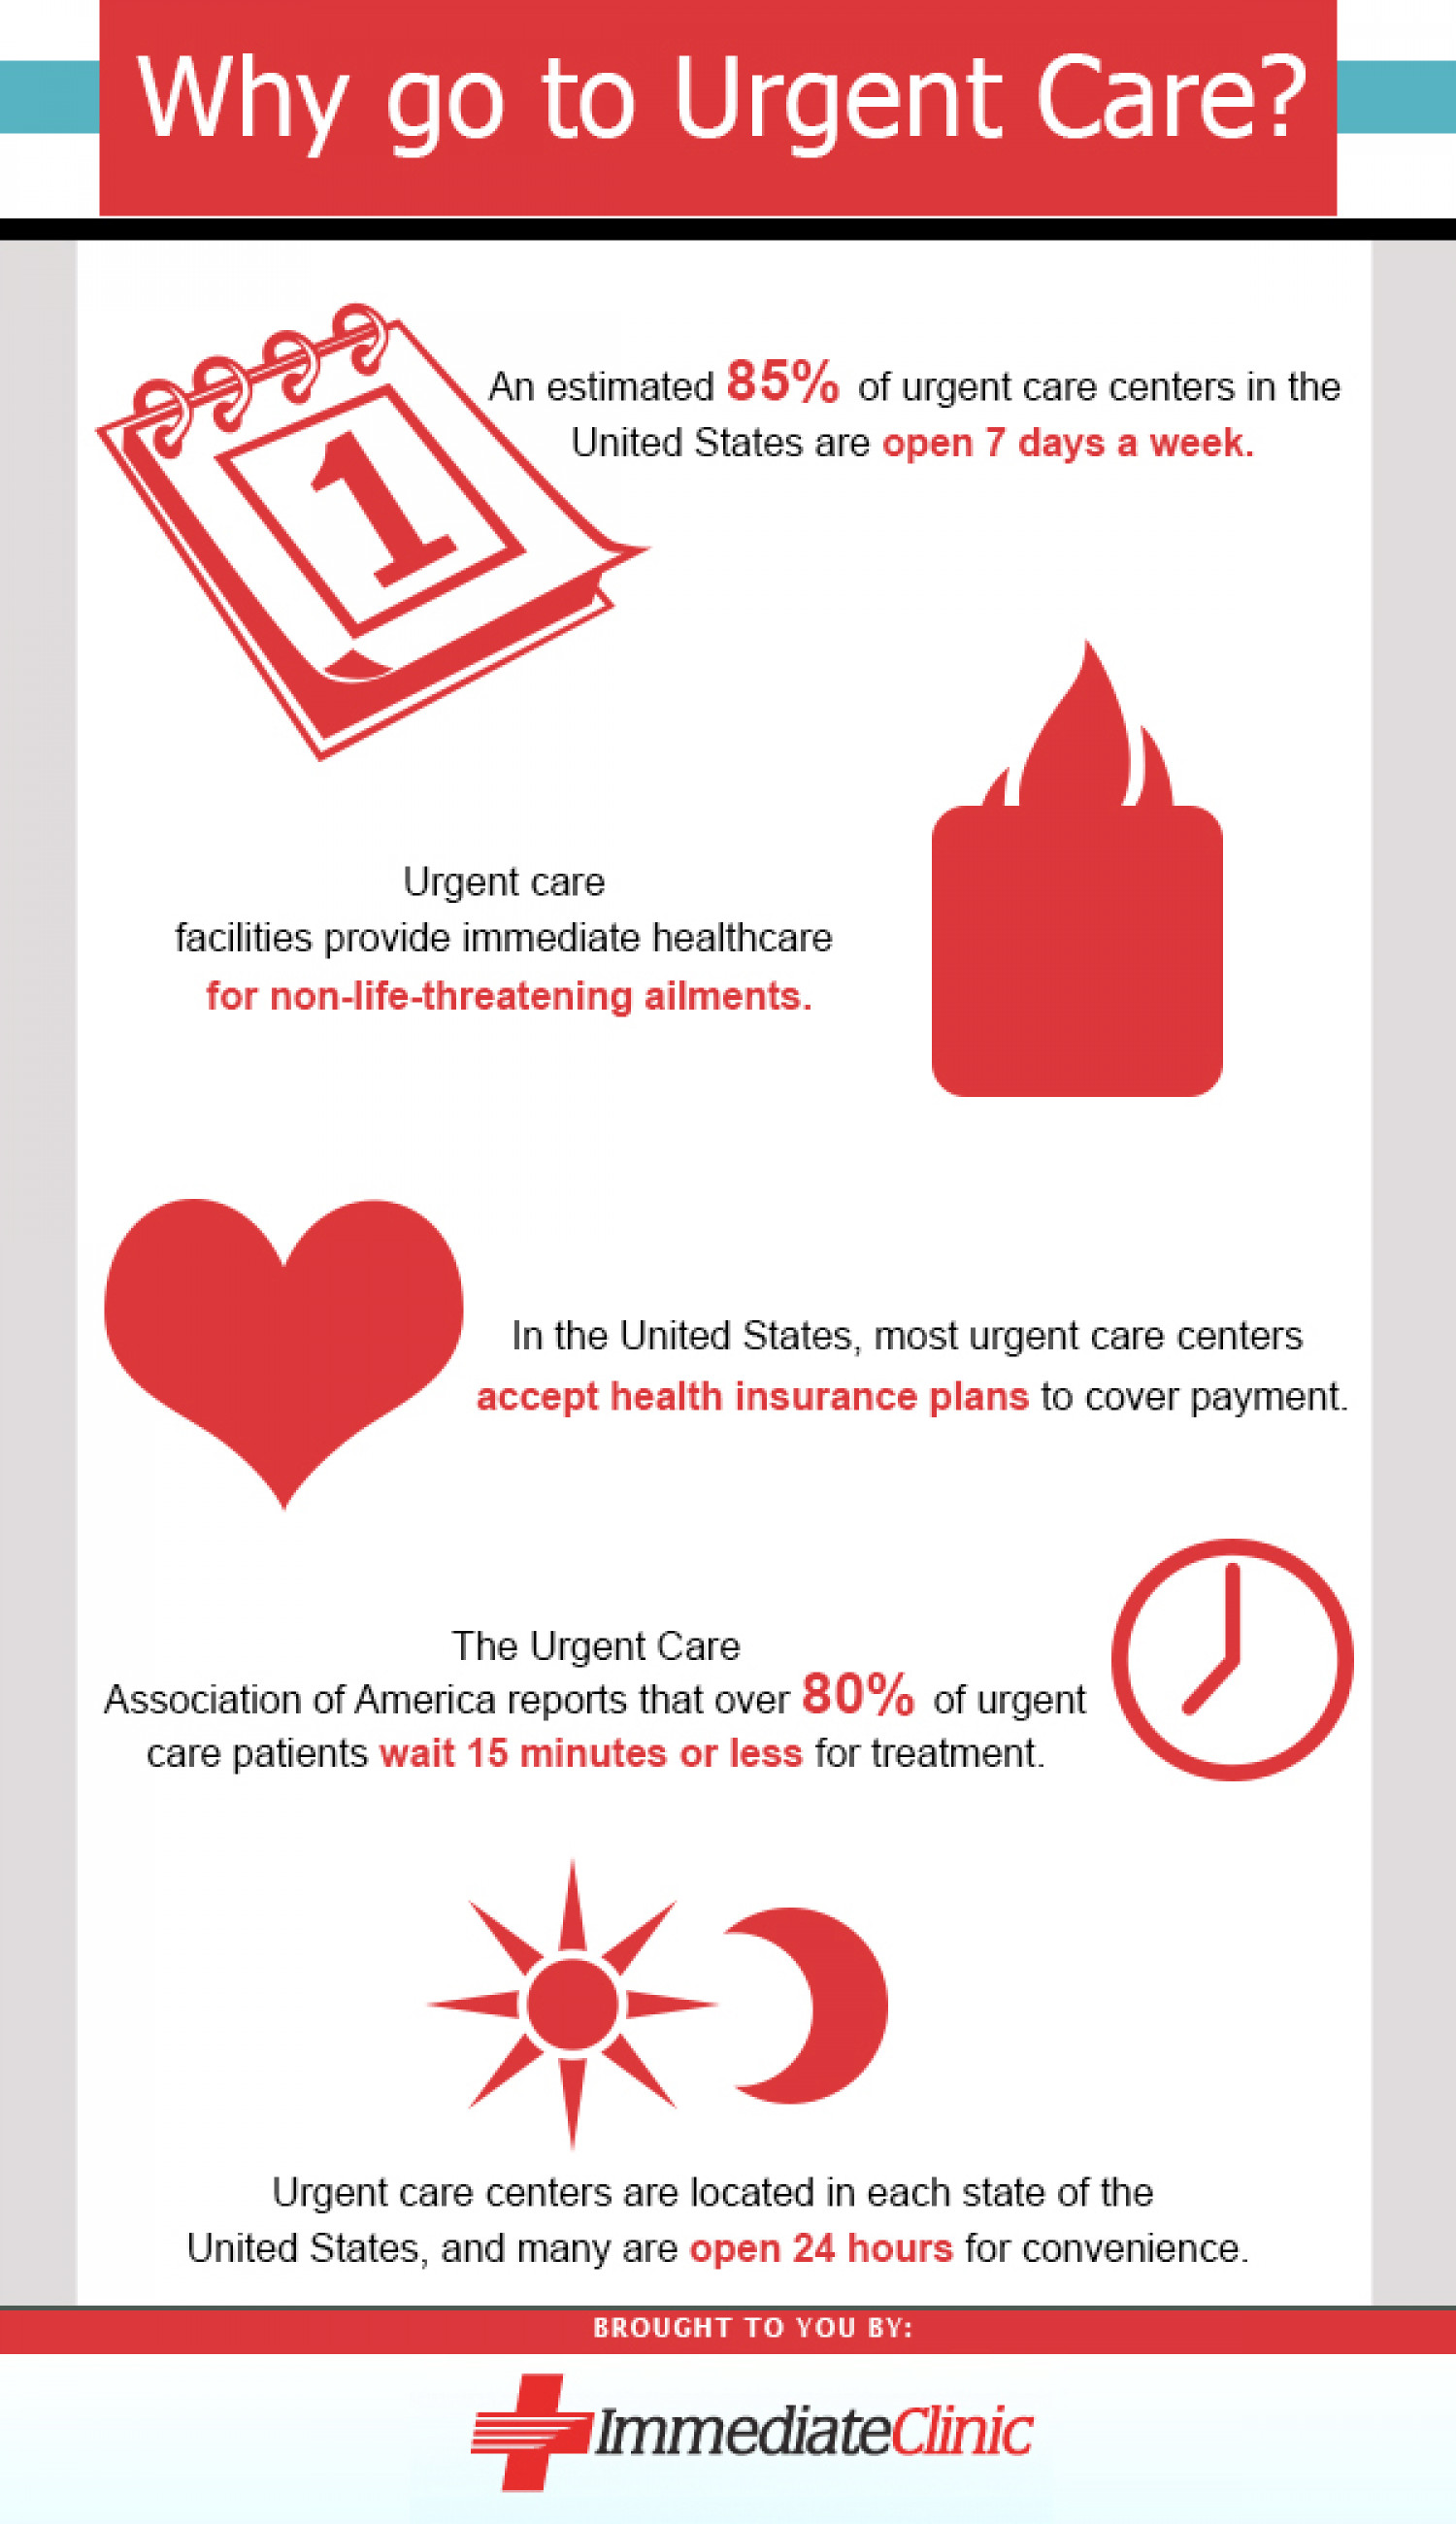 Why Go To Urgent Care? Infographic